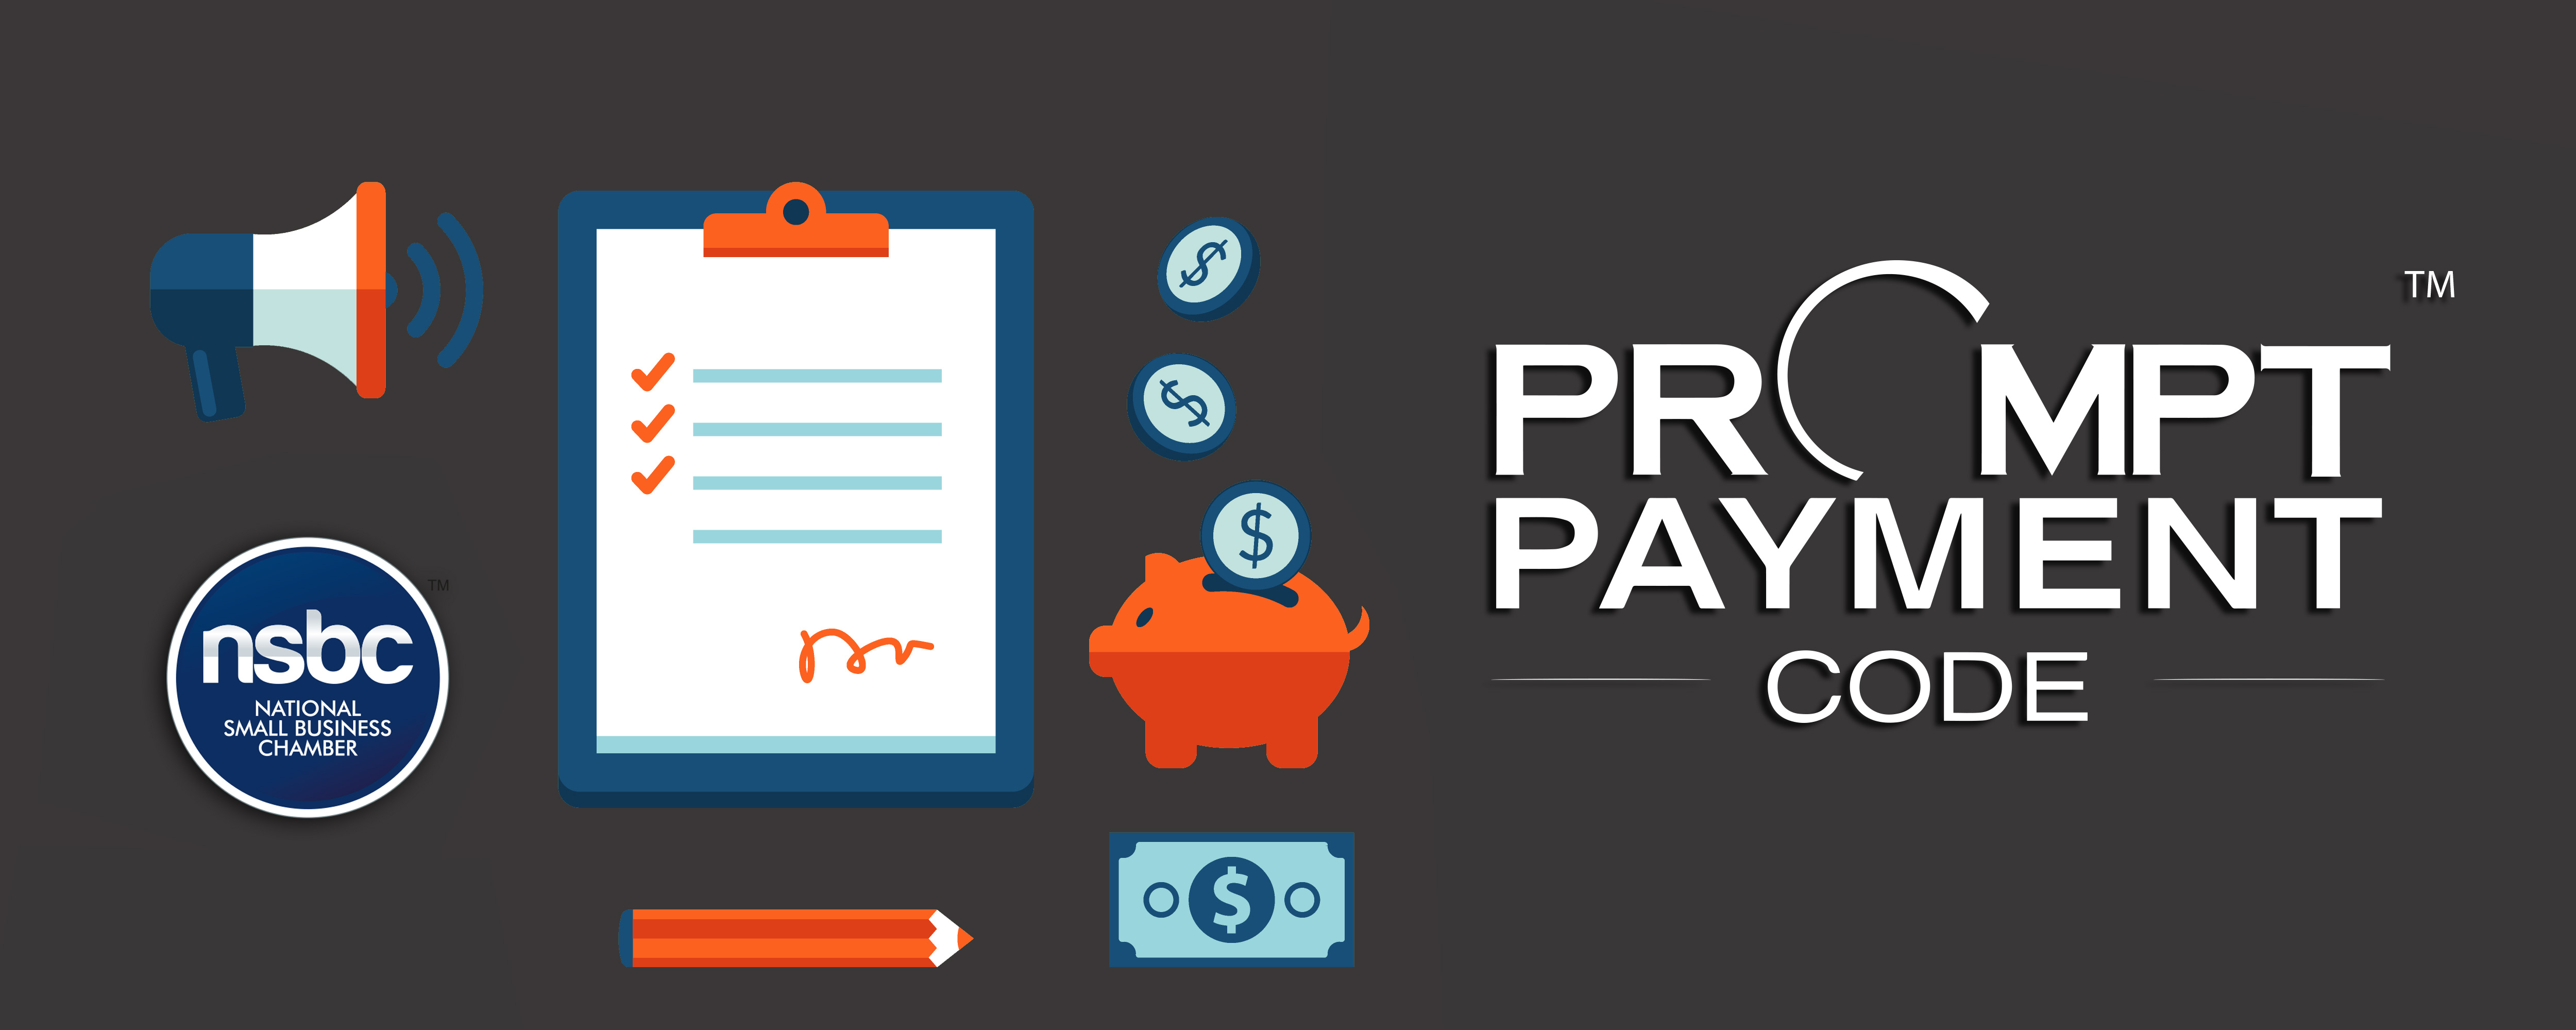 prompt-payment